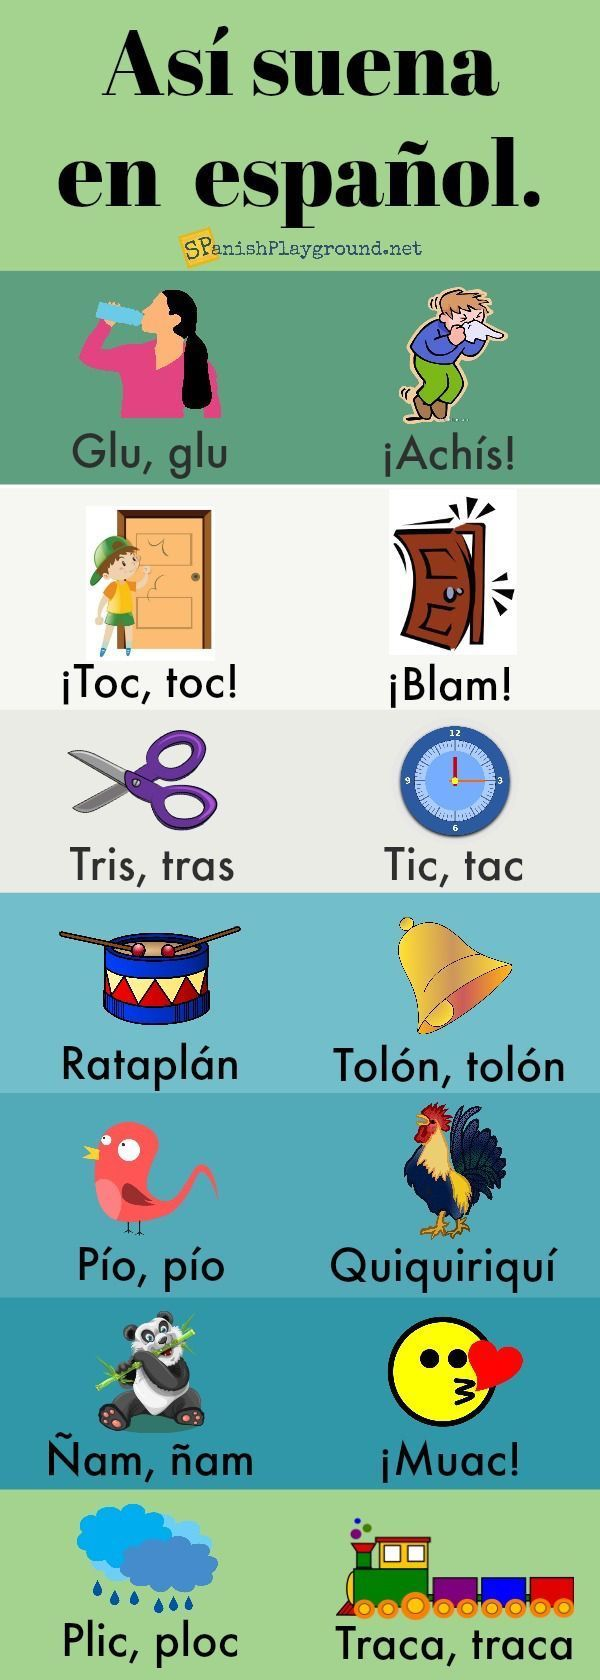 32 best Infographics images on Pinterest | Spanish class, Spanish ...